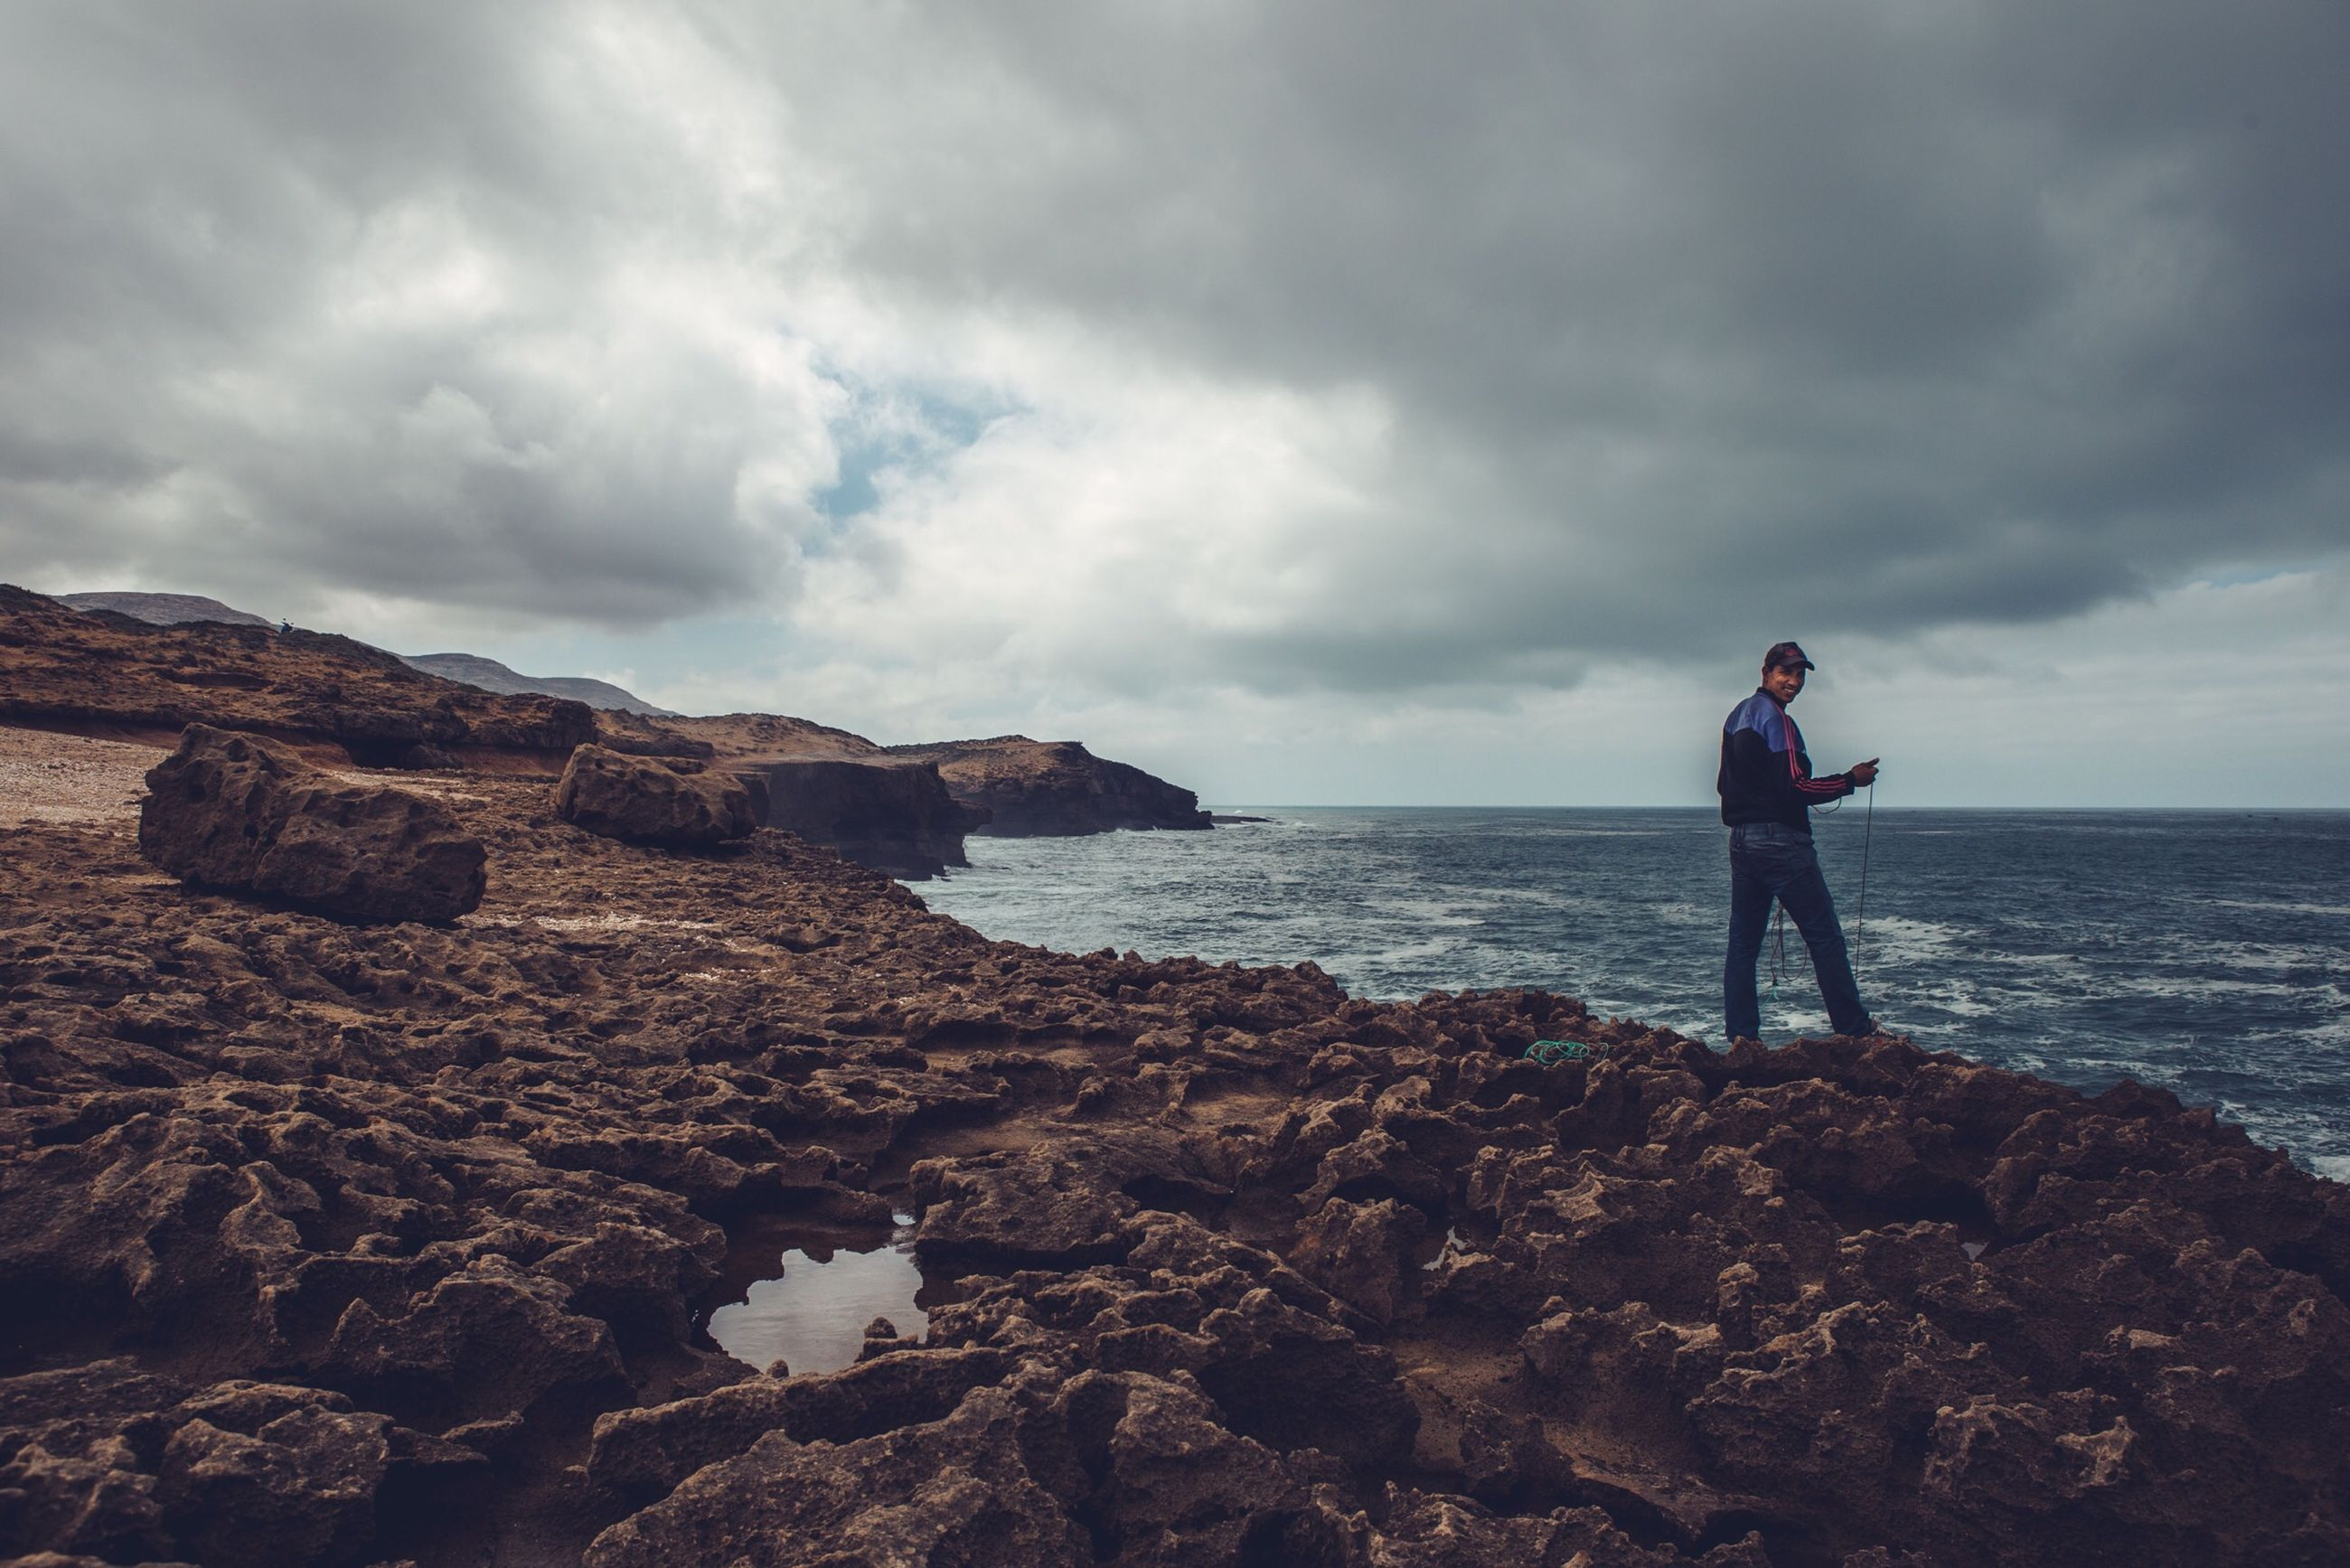 rock, cloud - sky, sky, rock - object, solid, water, sea, standing, one person, scenics - nature, beauty in nature, beach, real people, horizon, land, nature, horizon over water, outdoors